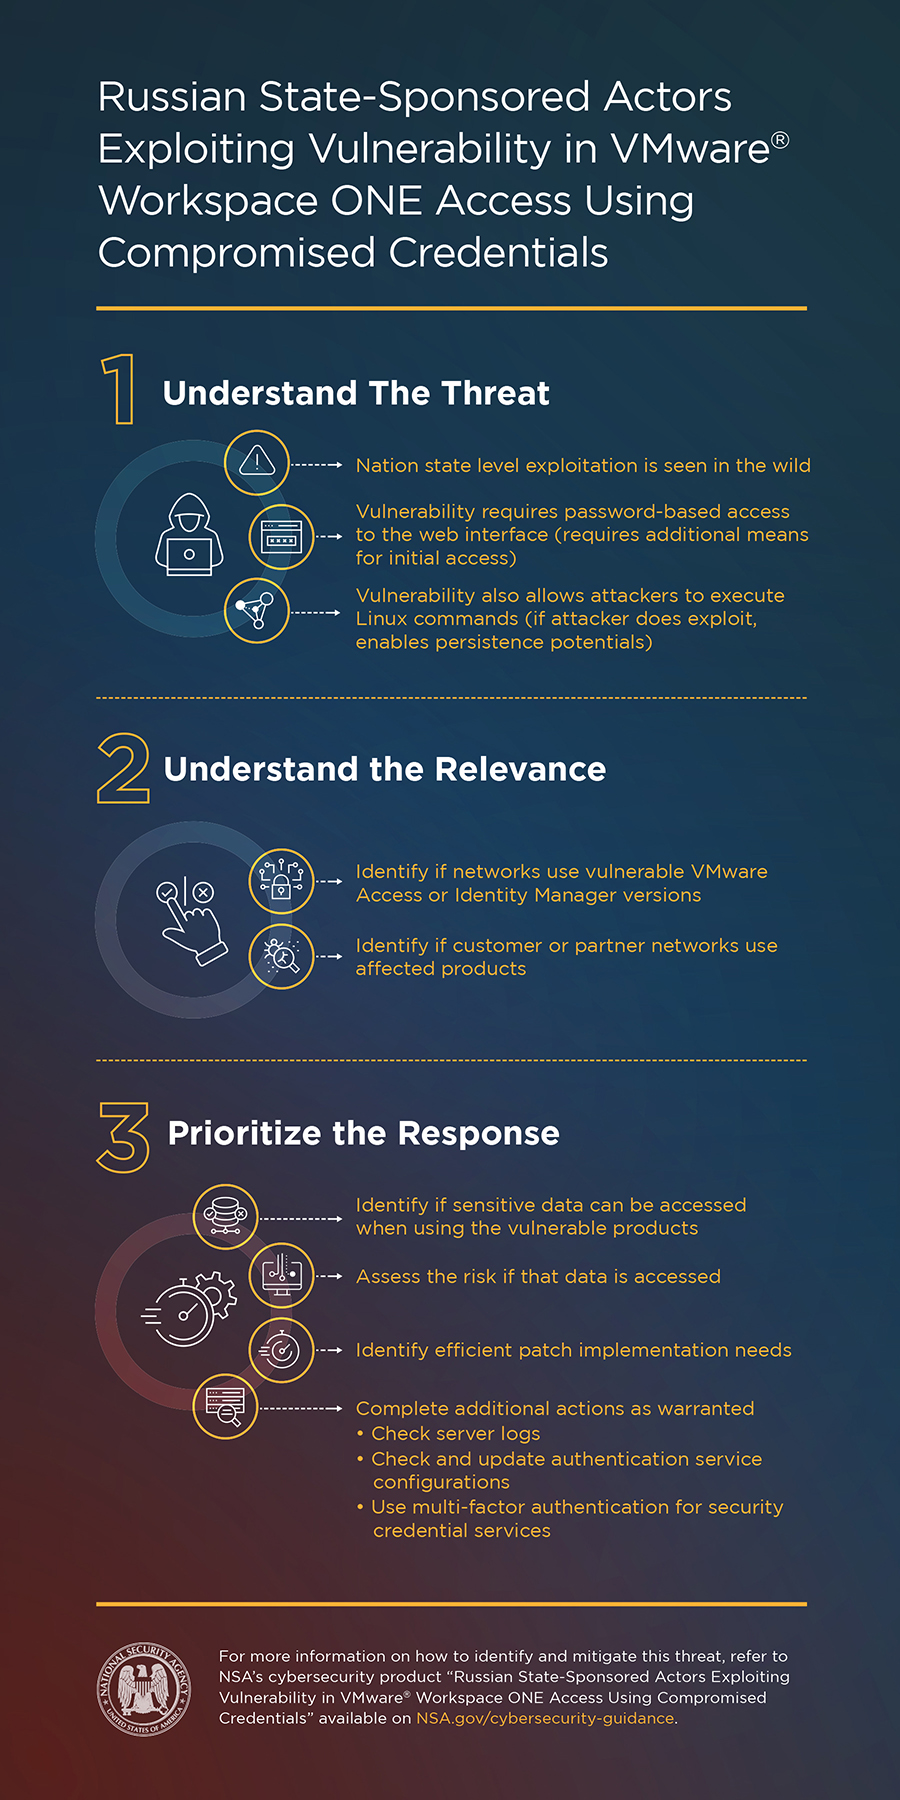 NSA says Russian state-sponsored hackers exploiting VMware products infographic